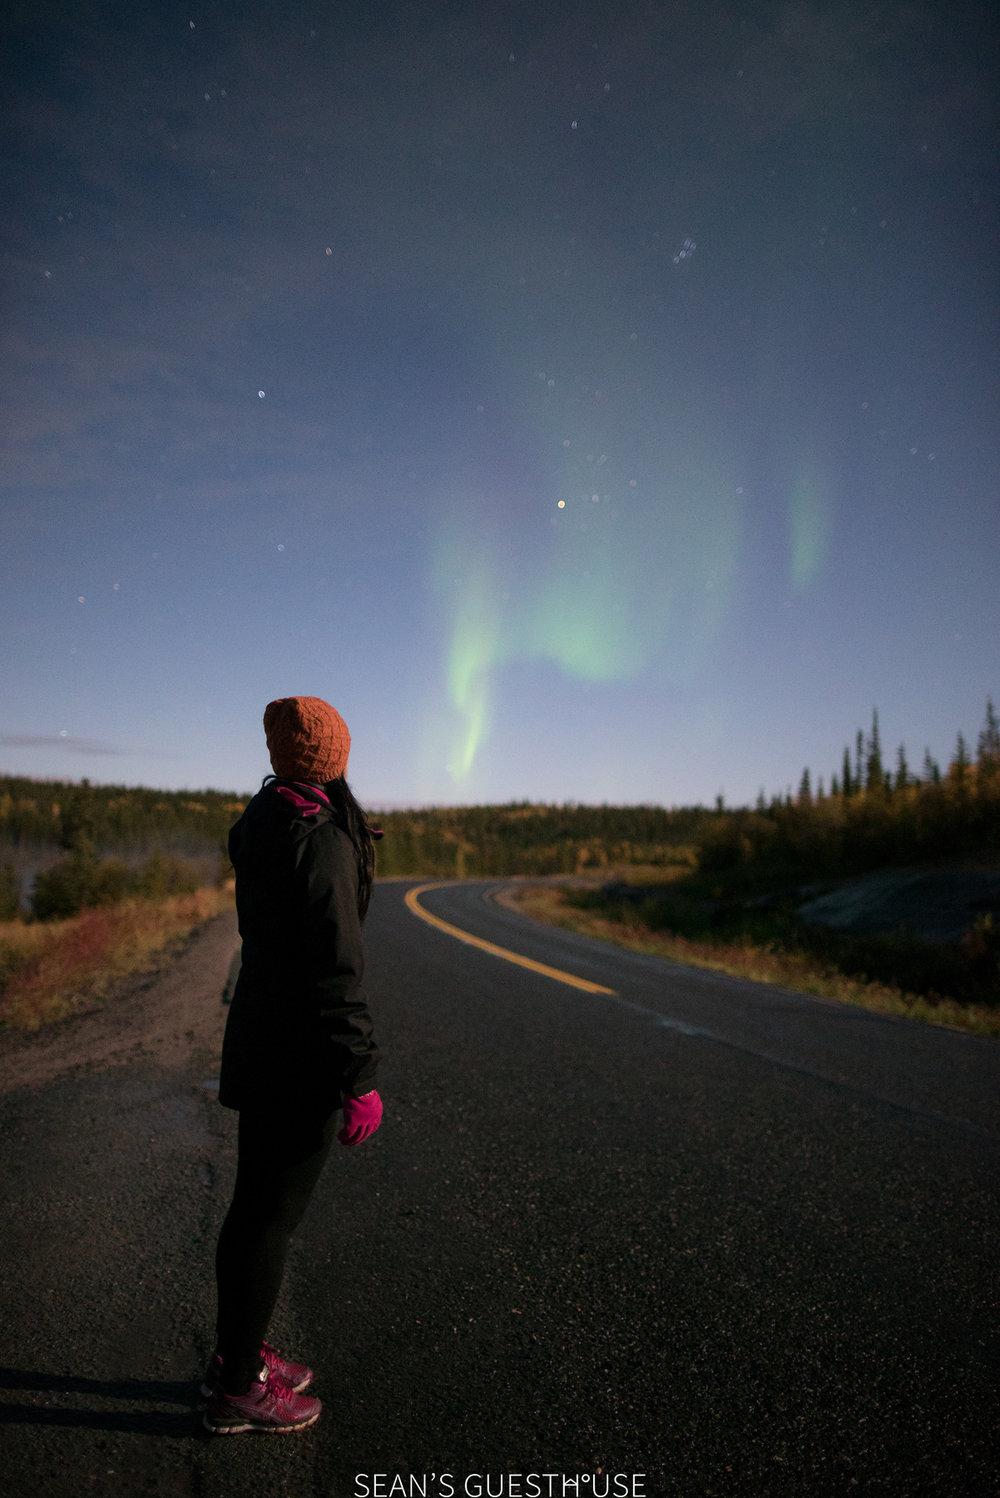 Sean's Guesthouse - Northern Lights Full Moon - 2.jpg